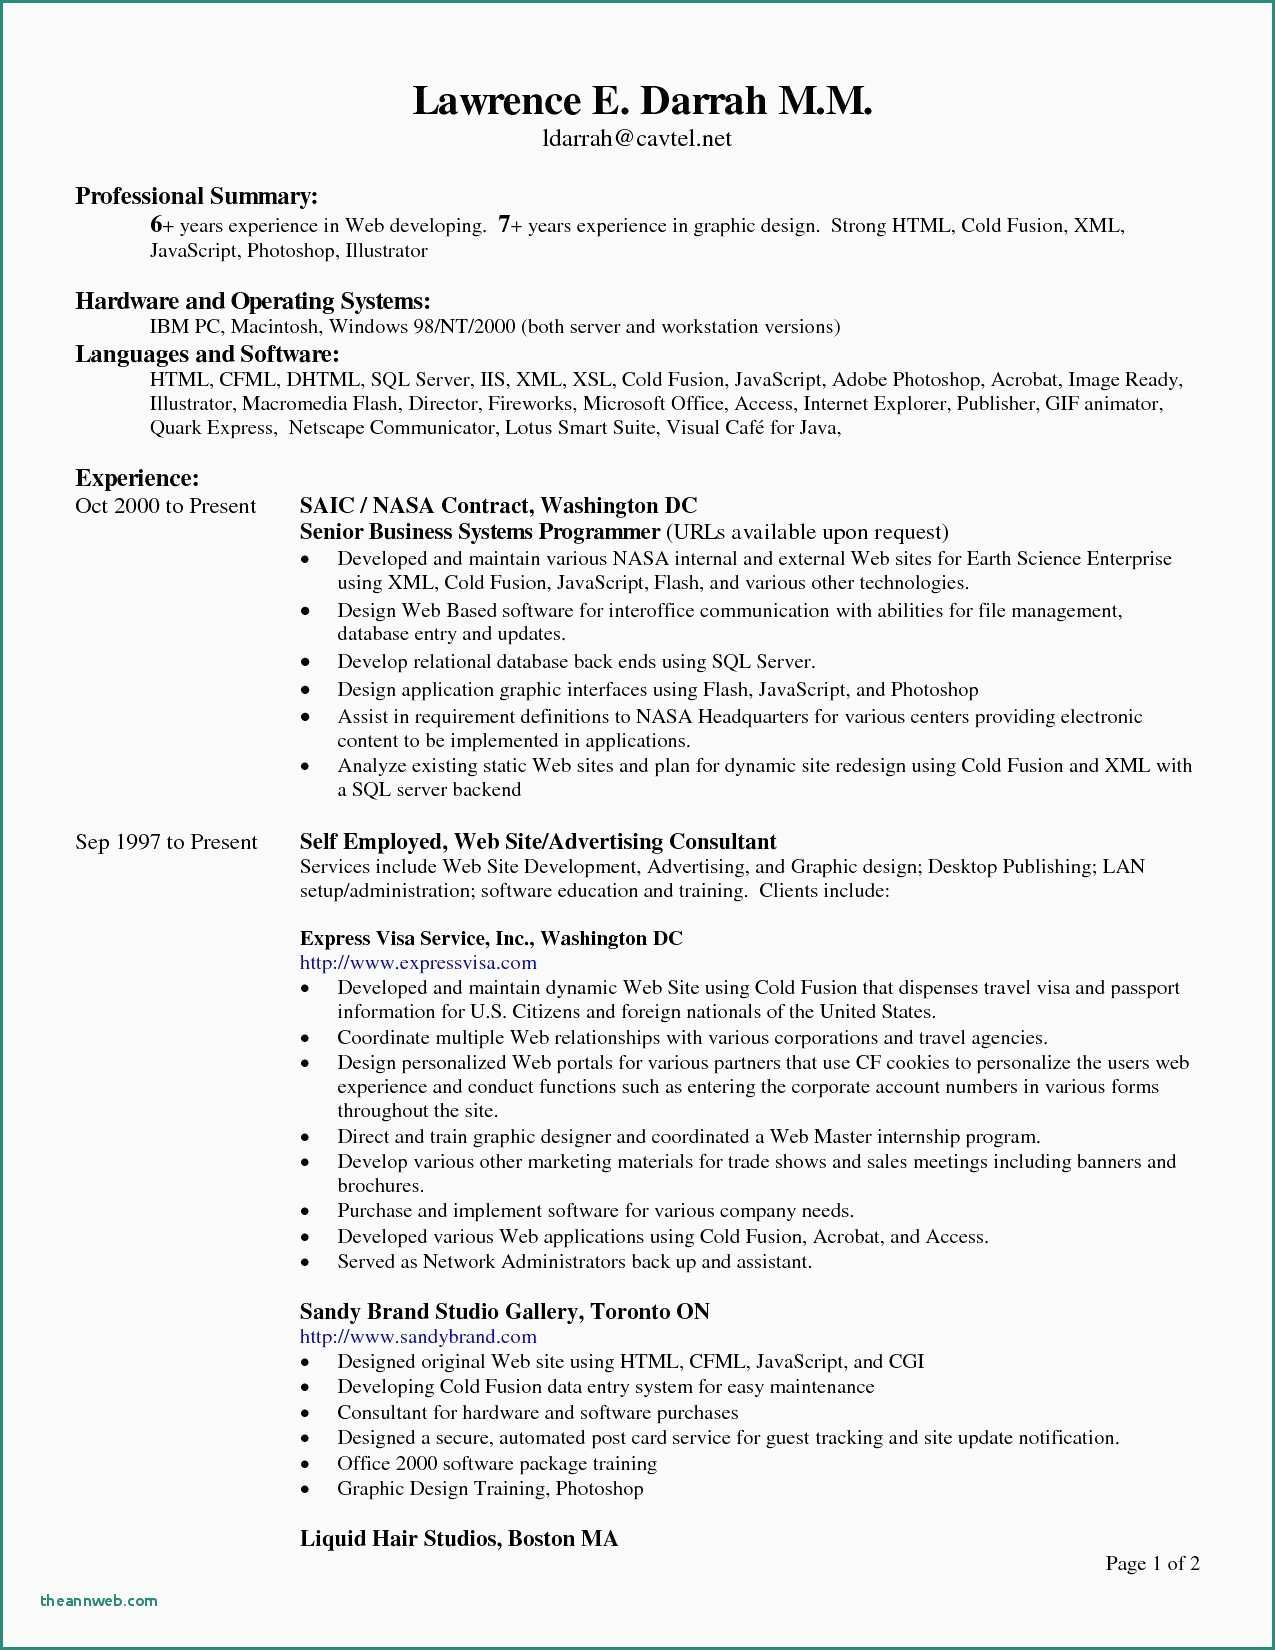 resume format header basic examples sample designs generic objective ubs honor society on Resume Sample Resume Header Designs